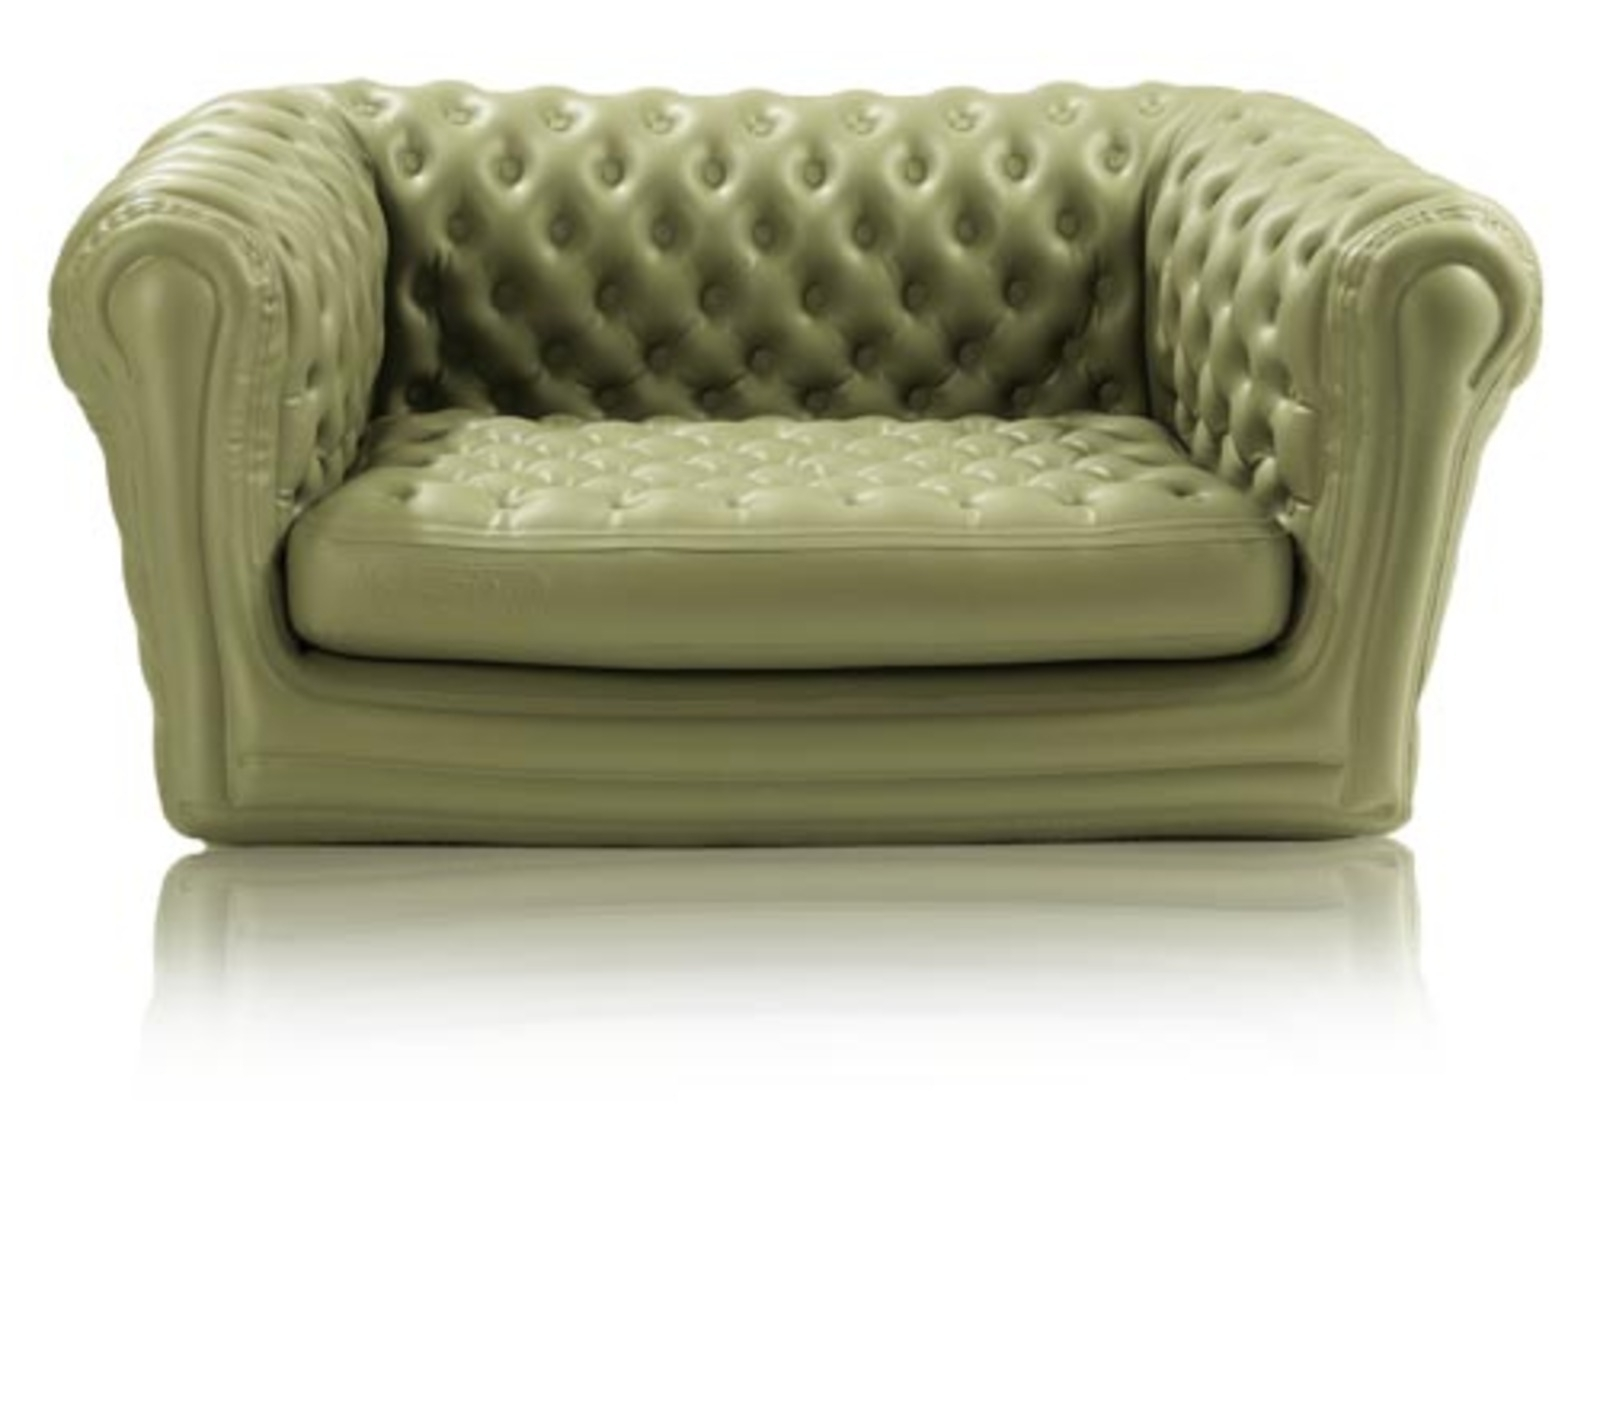 Famous Blofield Inflatable Chesterfield Furniture – Cool Hunting Throughout Inflatable Sofas And Chairs (View 8 of 15)